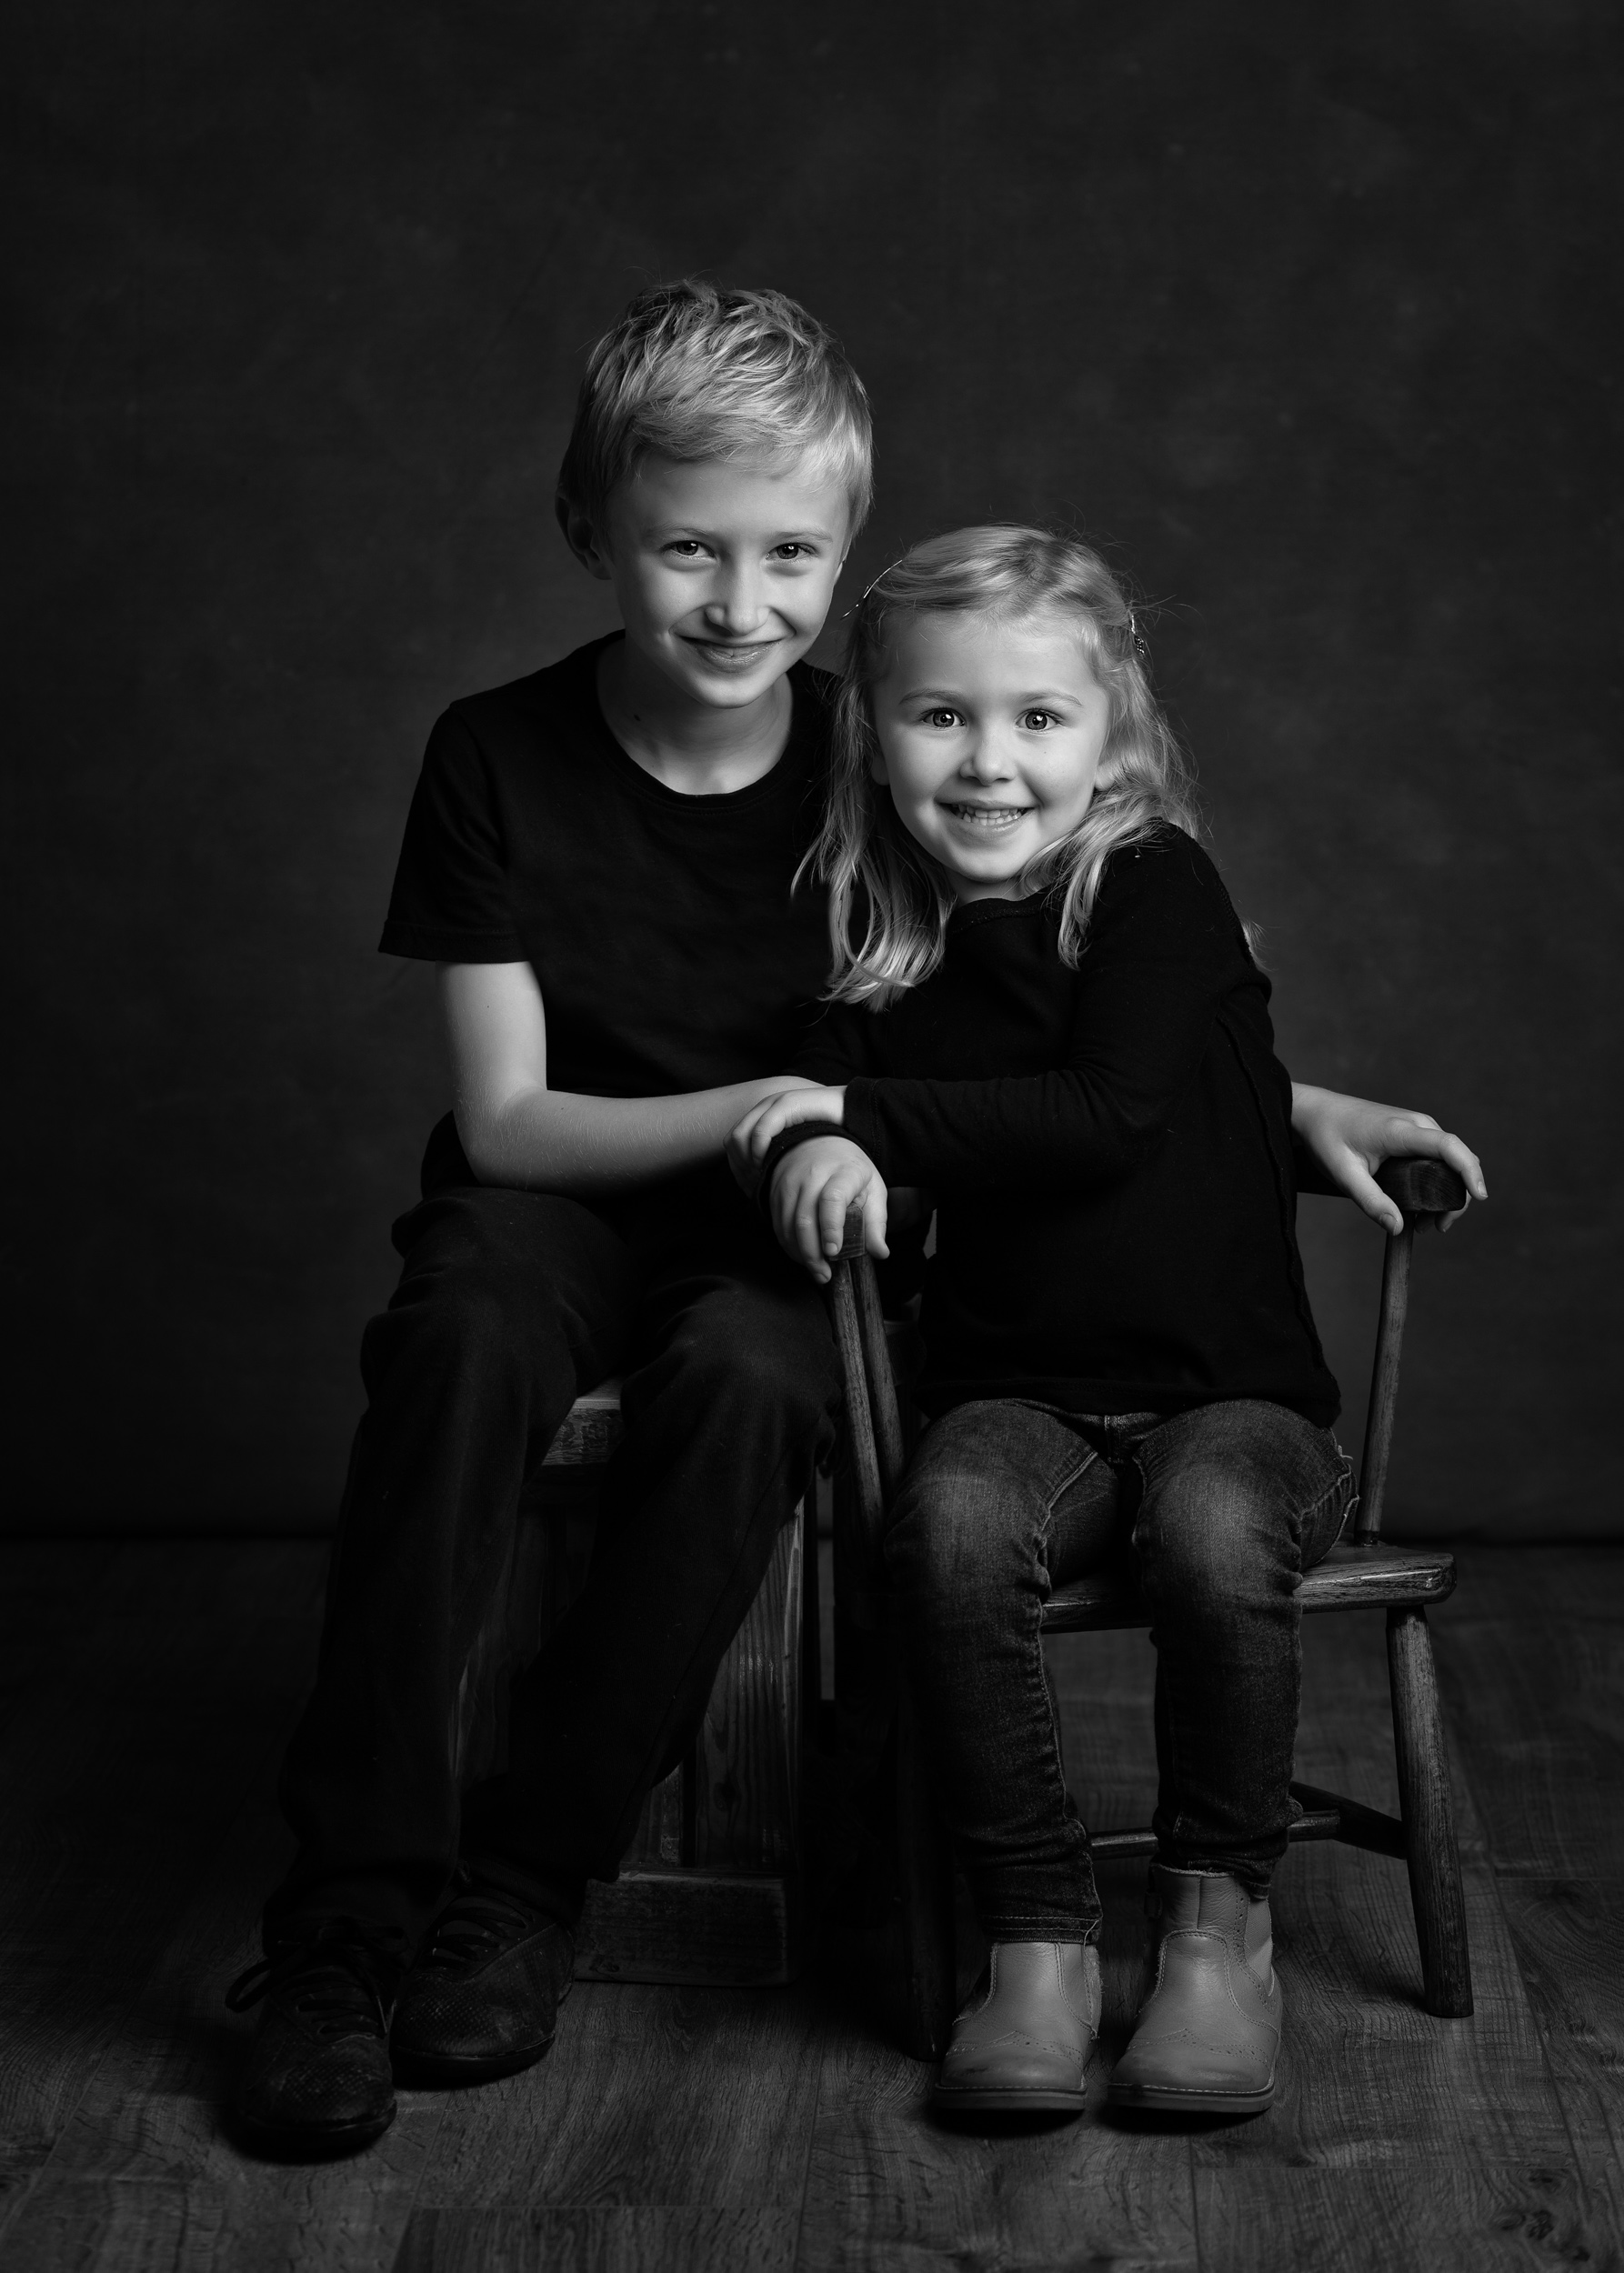 Black and white portrait of a brother and sister posing together at their Family Portrait photo shoot in Cheshire